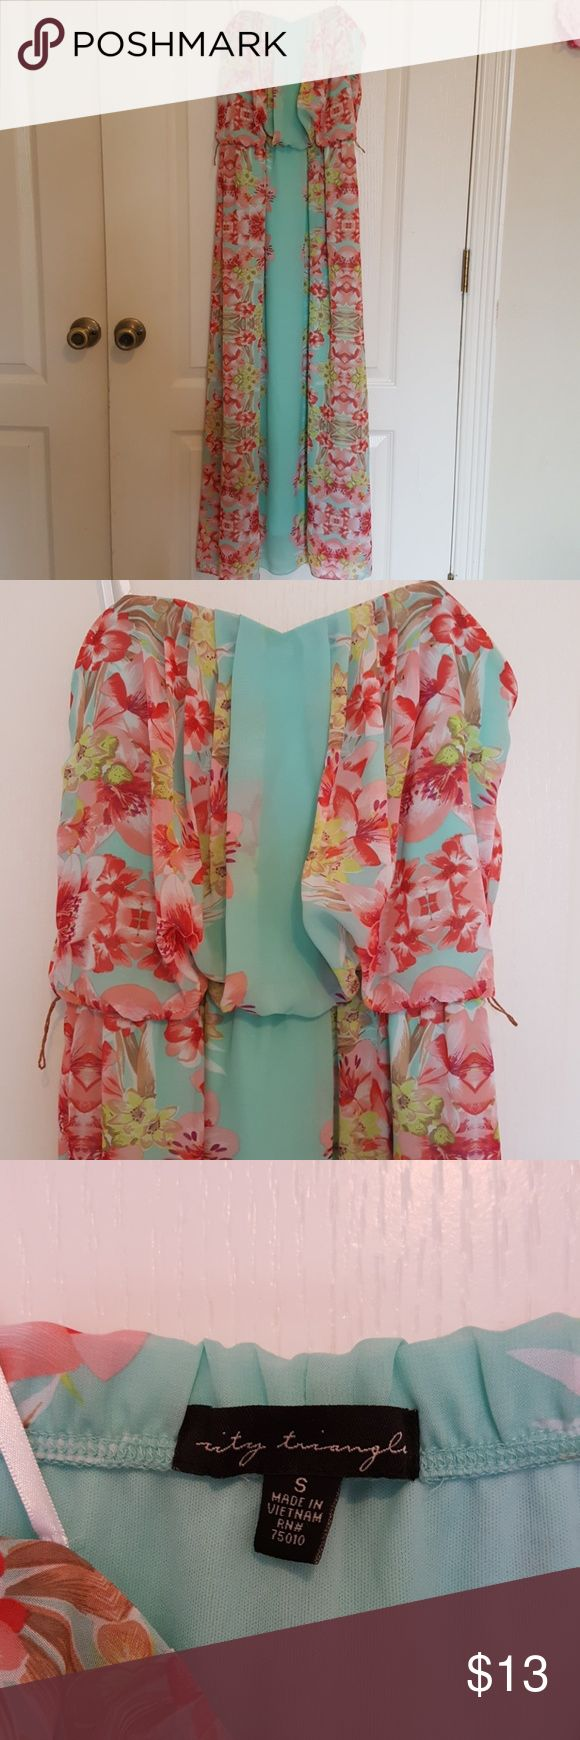 "City Triangles strapless mint maxi dress This dress is so cute and perfect for summer!  It is 46""long and has an elastic waist. Includes belt and is in great condition. No rips or stains. Bundle so you can save more! I also welcome offers. City Triangles Dresses Maxi"